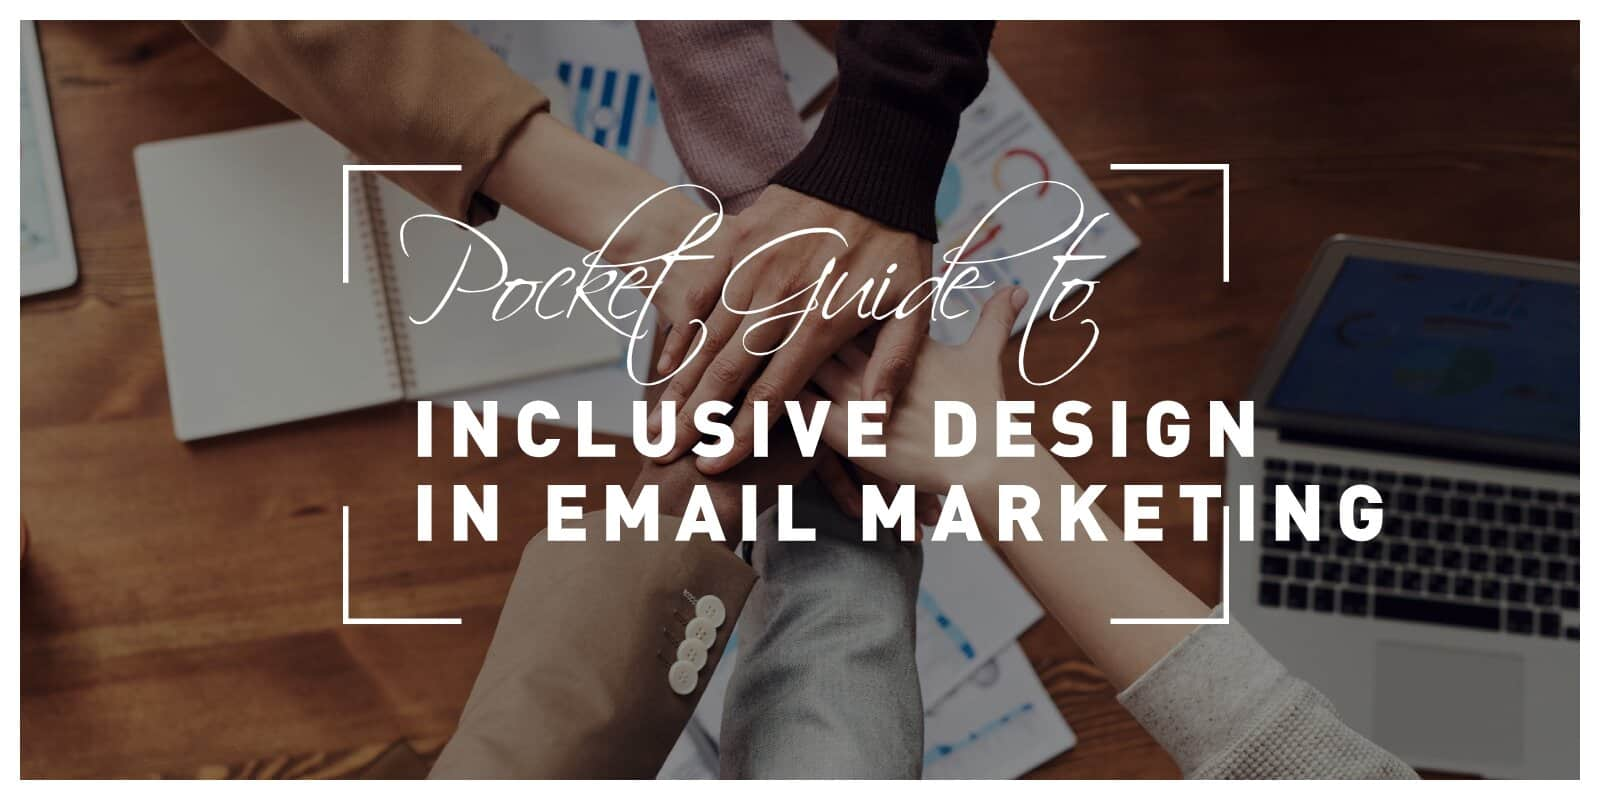 Inclusive Design in Email Marketing